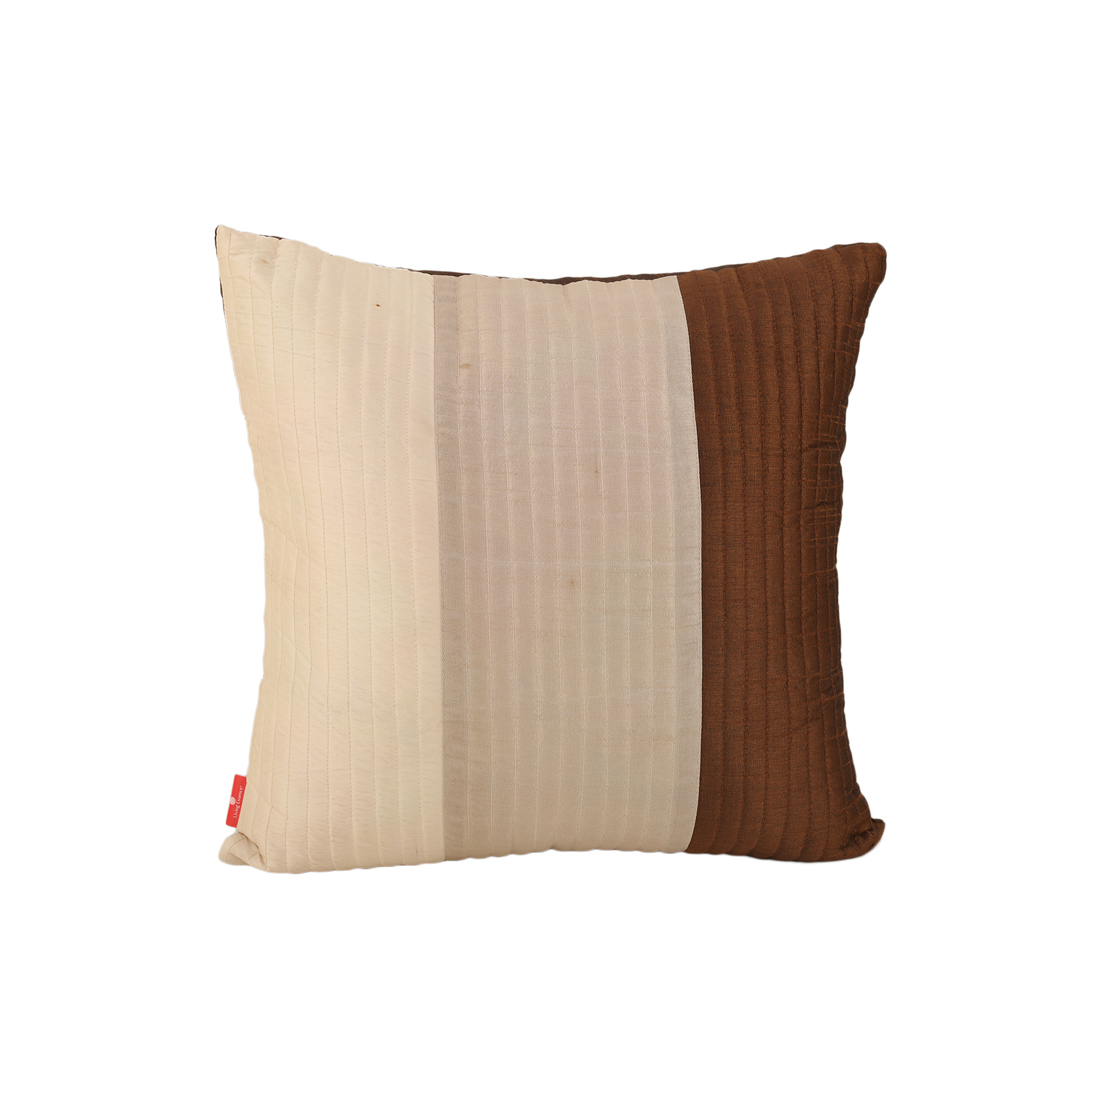 Fiesta Brown Polyester Cushion Covers in Brown Colour by Living Essence